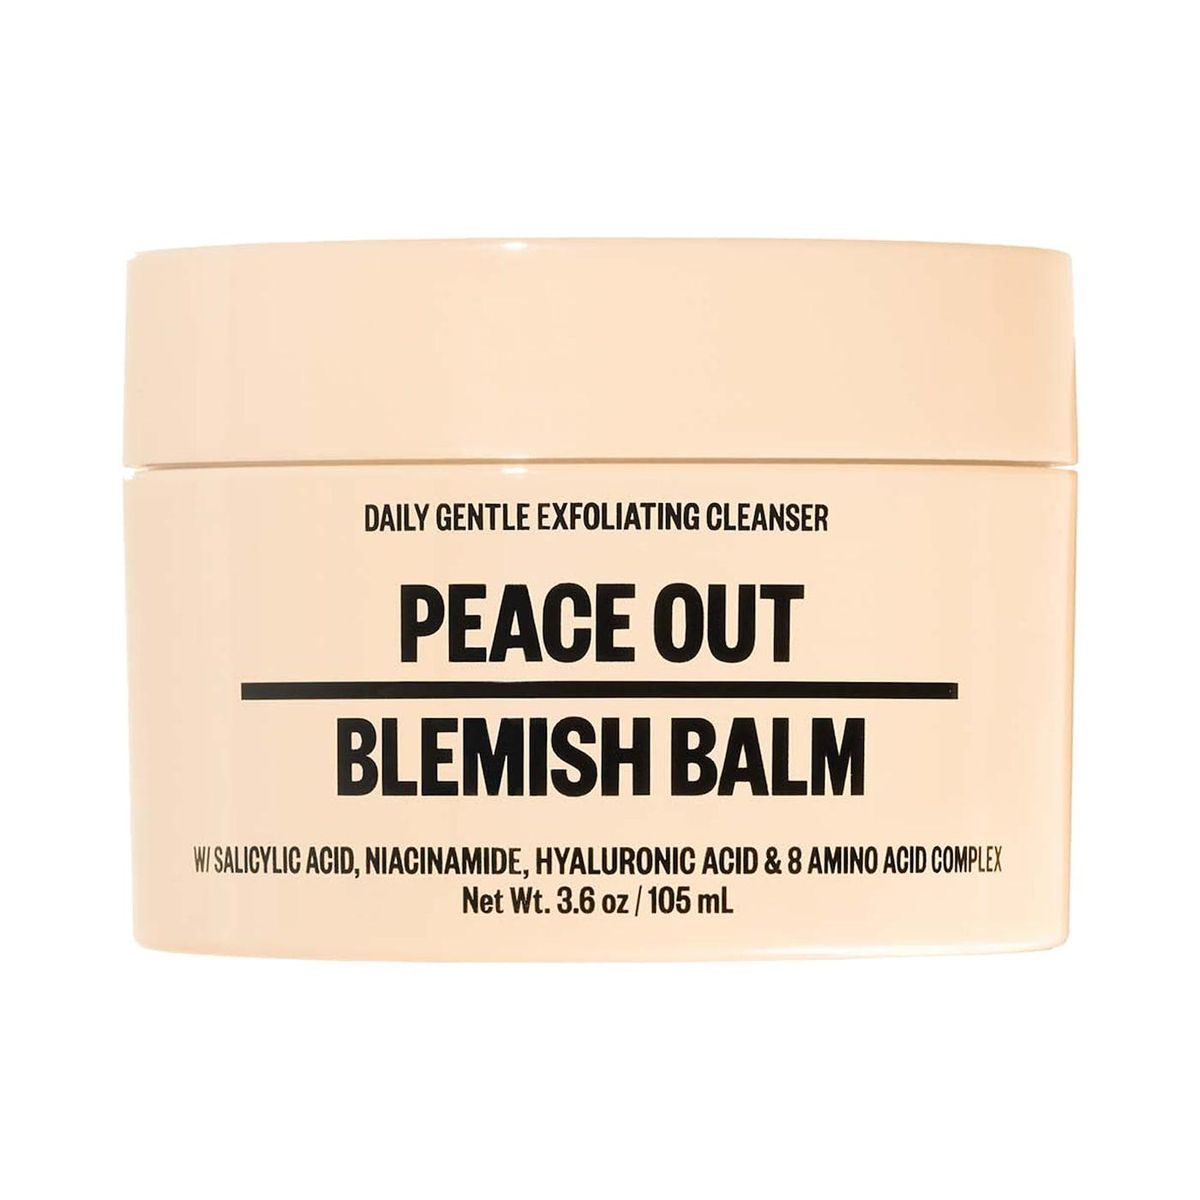 peace out blemish balm cleanser